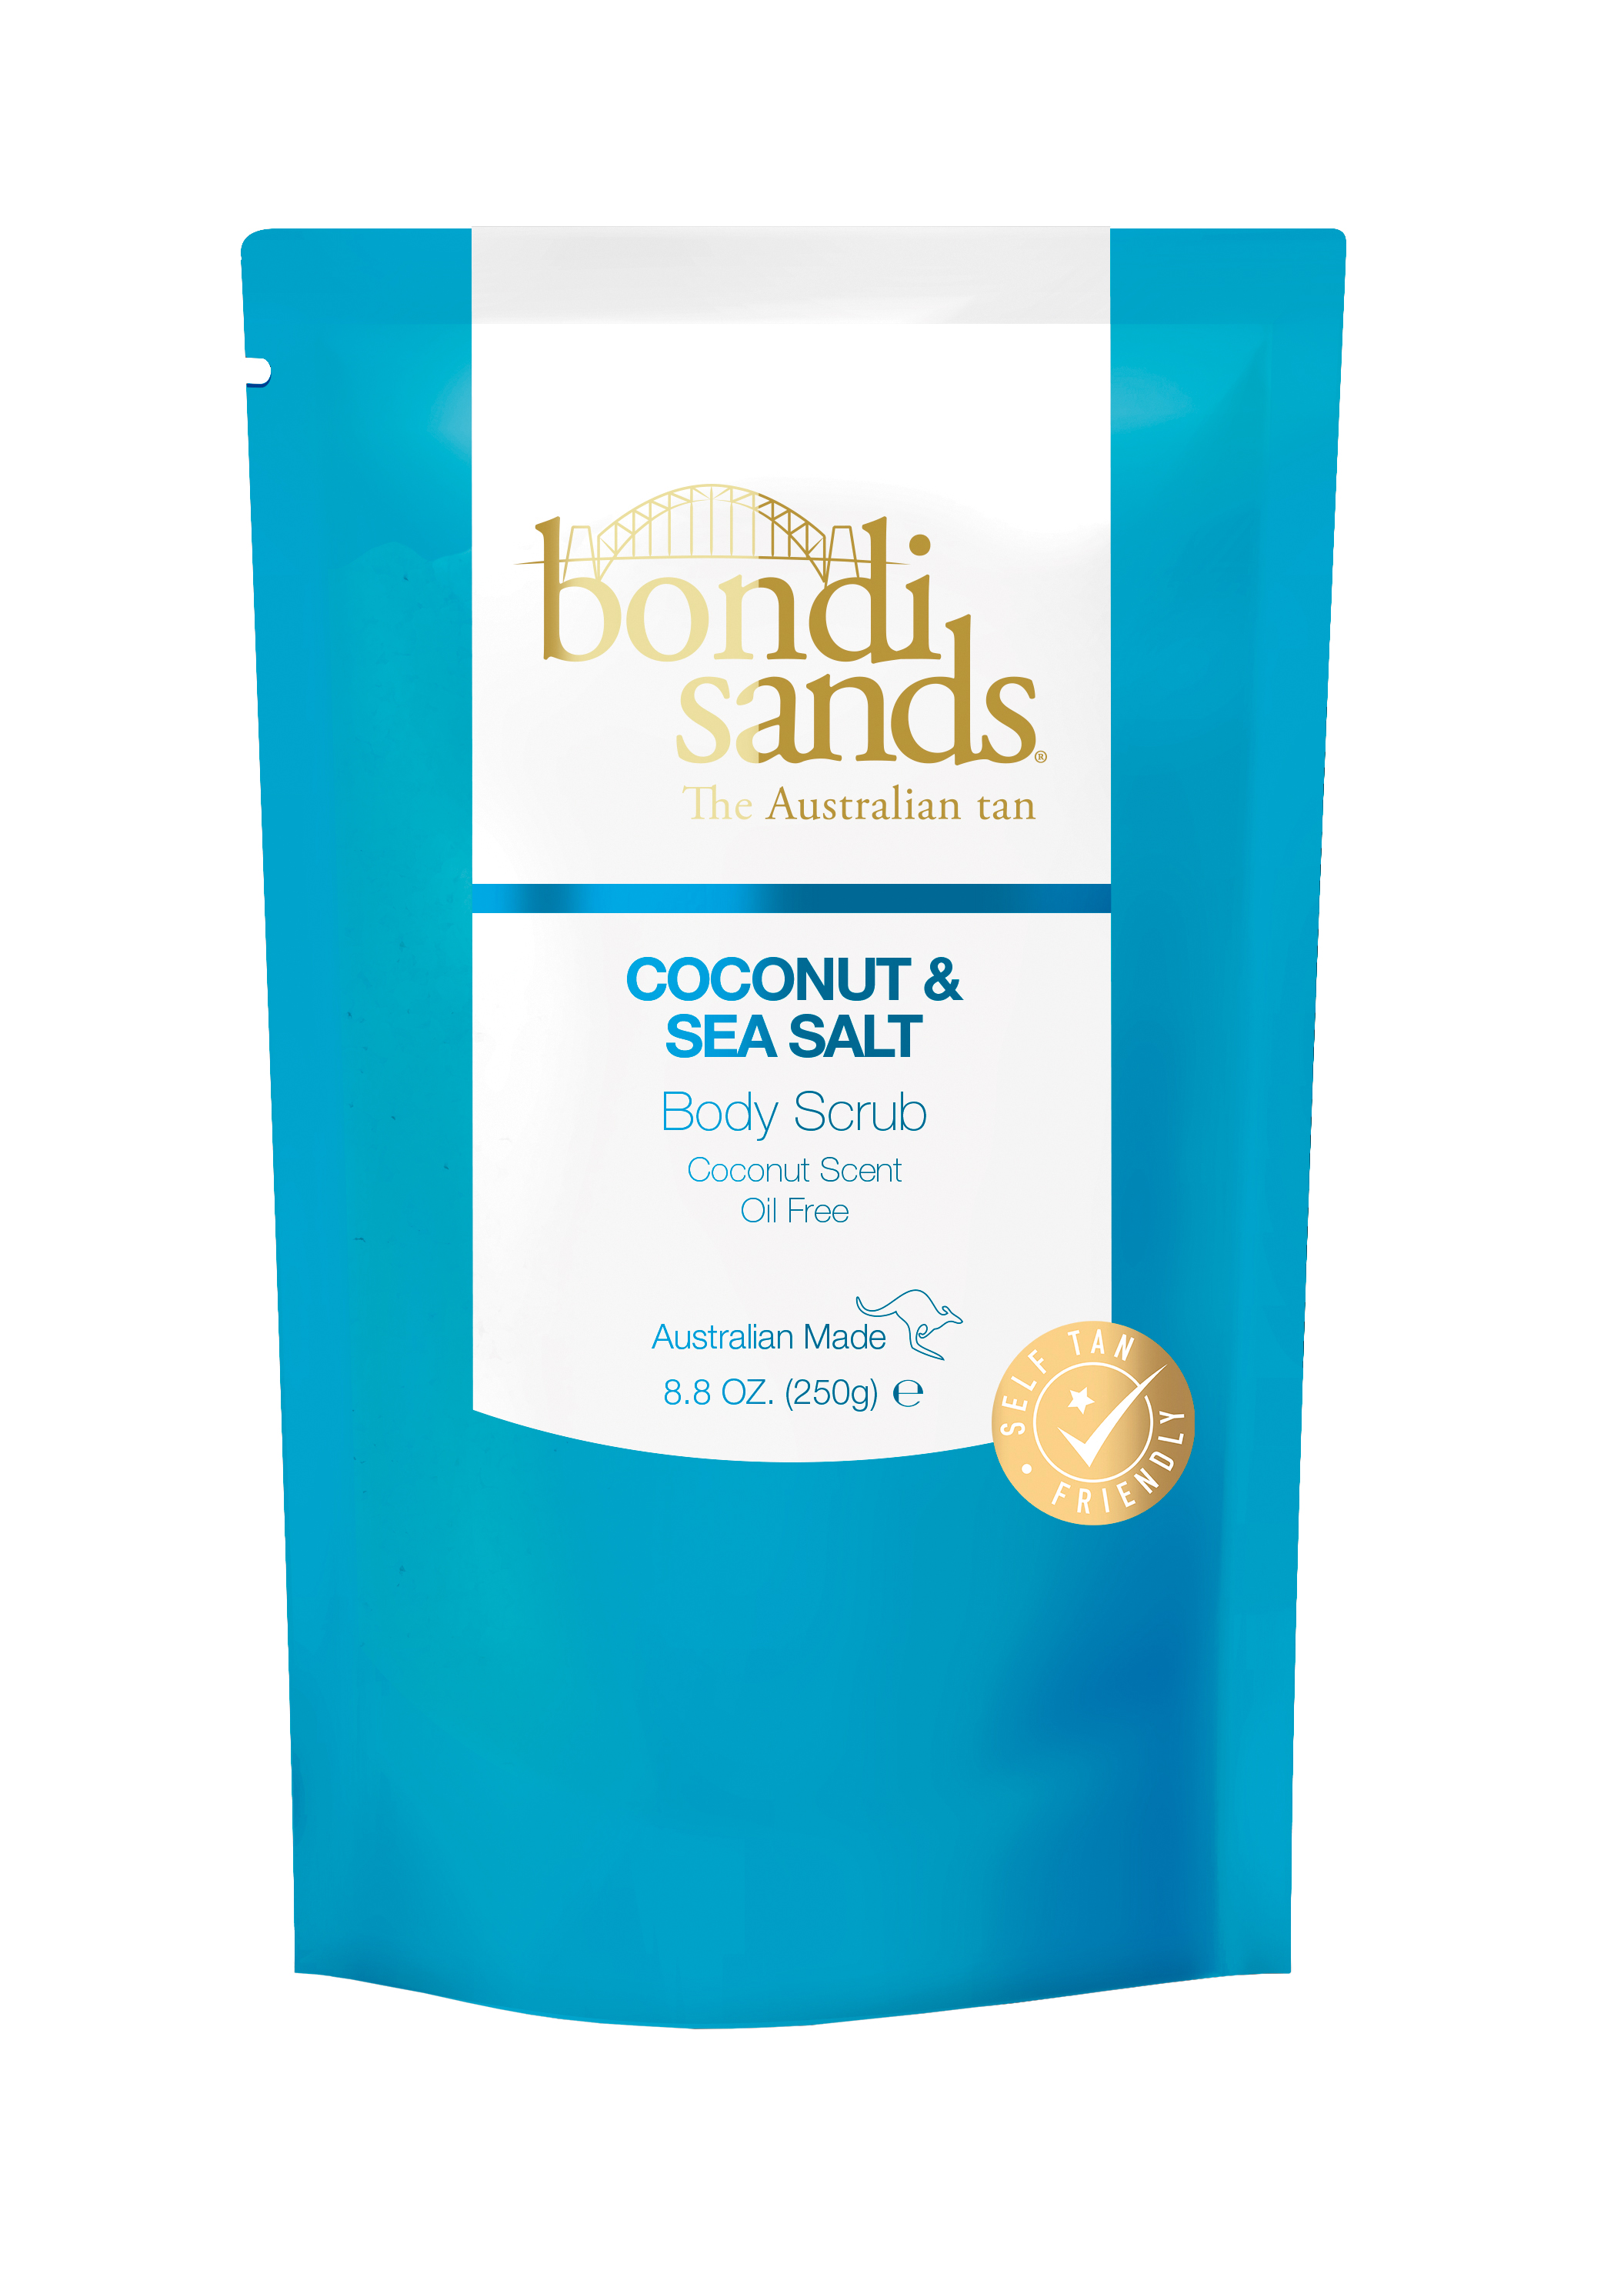 With naturally derived exfoliants including Australian sand, sea salt, coconut husk and walnut shell,  Bondi Sands Body Scrub  works to gently buff away dead skin cells and impurities, leaving skin smooth, soft and ready for your self-tan application.  www.bondisands.com.au